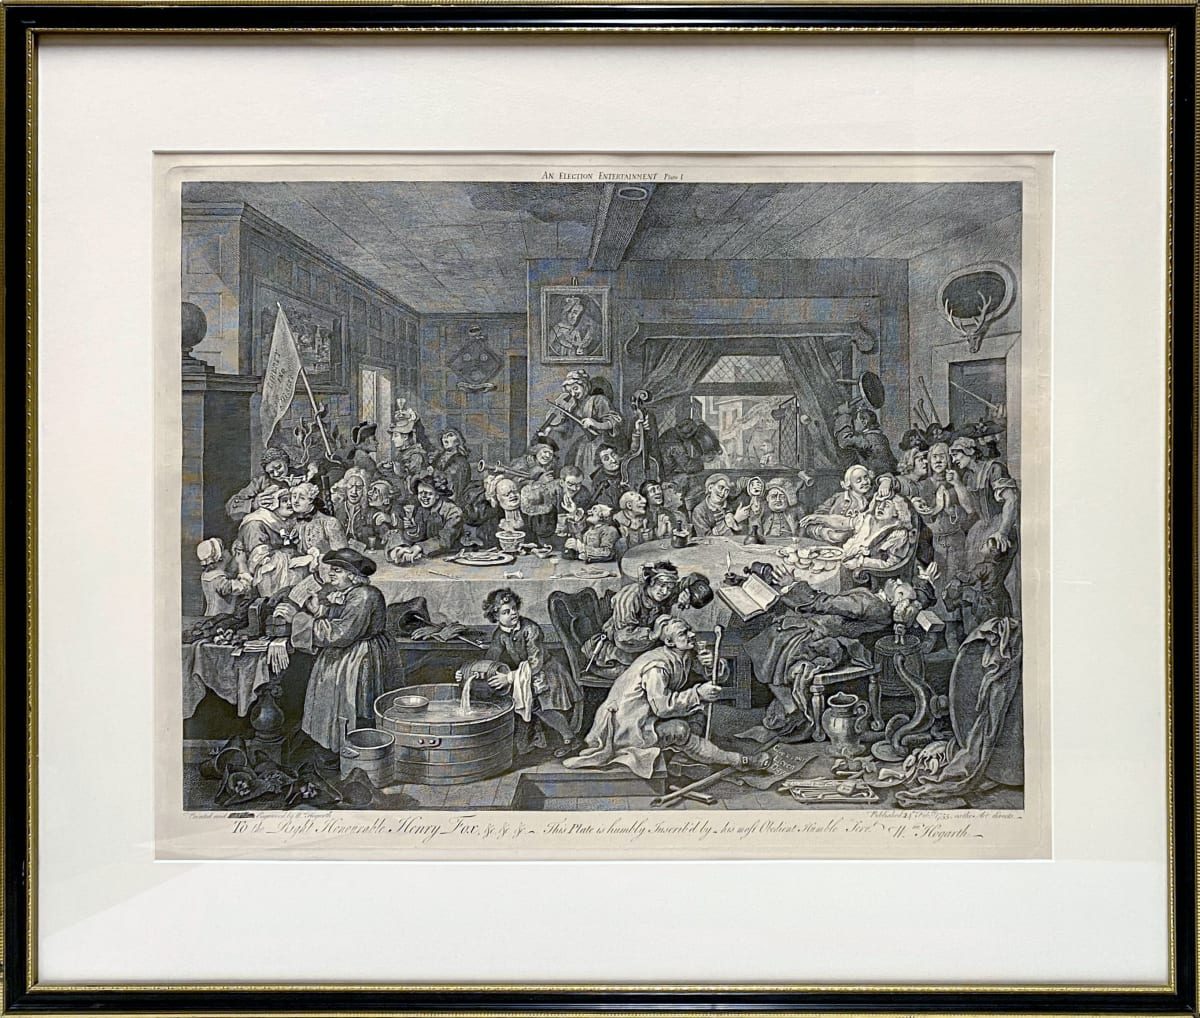 3956 - An Election Entertainment Plate 1 by William Hogarth (1697 – 1764)